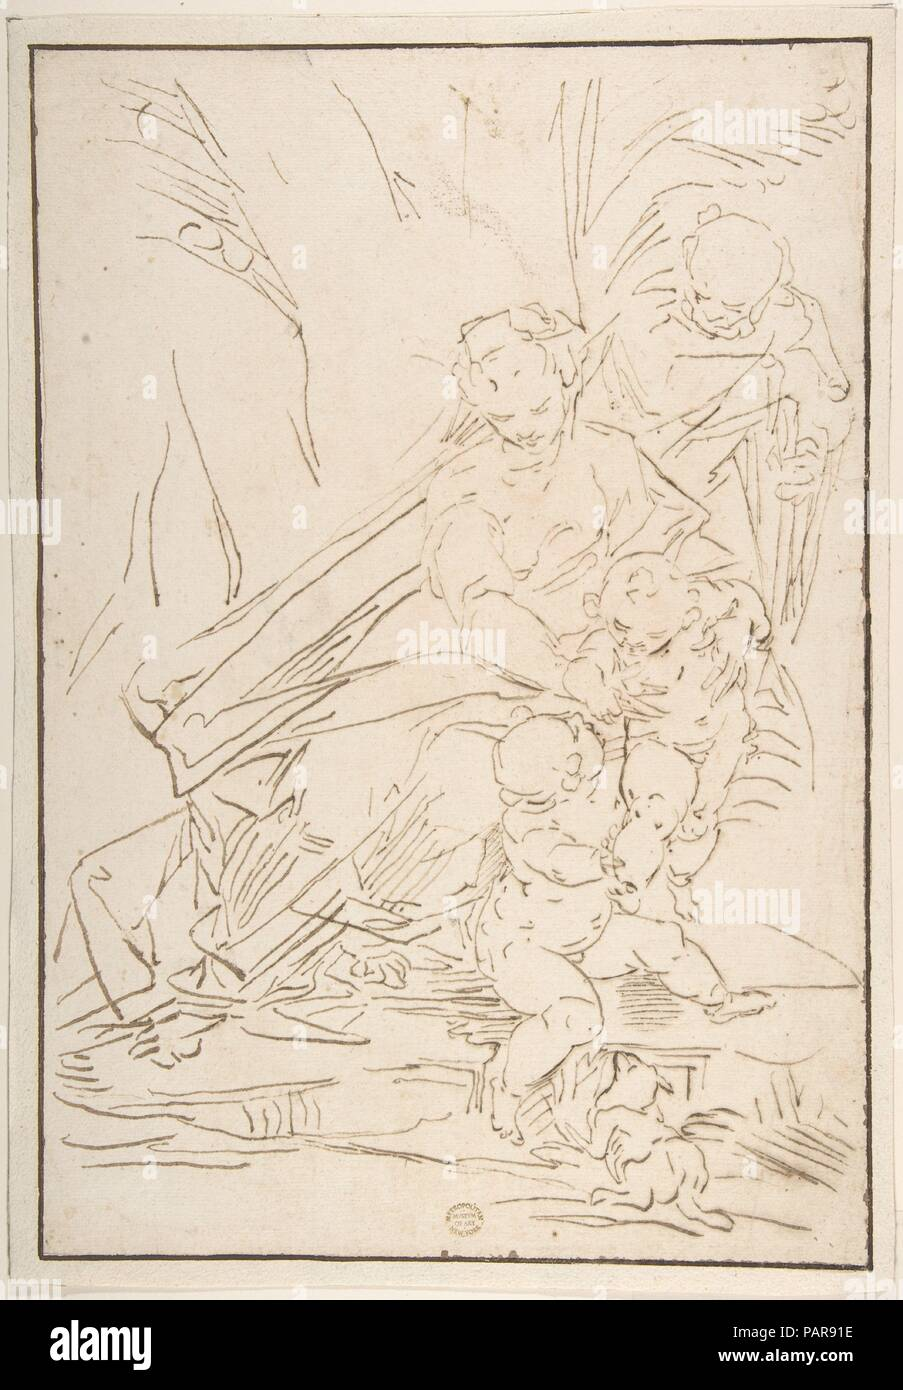 Holy Family. Artist: After Luca Cambiaso (Italian, Moneglia 1527-1585 Madrid). Dimensions: 14 1/4 x 9 3/4in. (36.2 x 24.8cm). Date: 1527-85. Museum: Metropolitan Museum of Art, New York, USA. Stock Photo